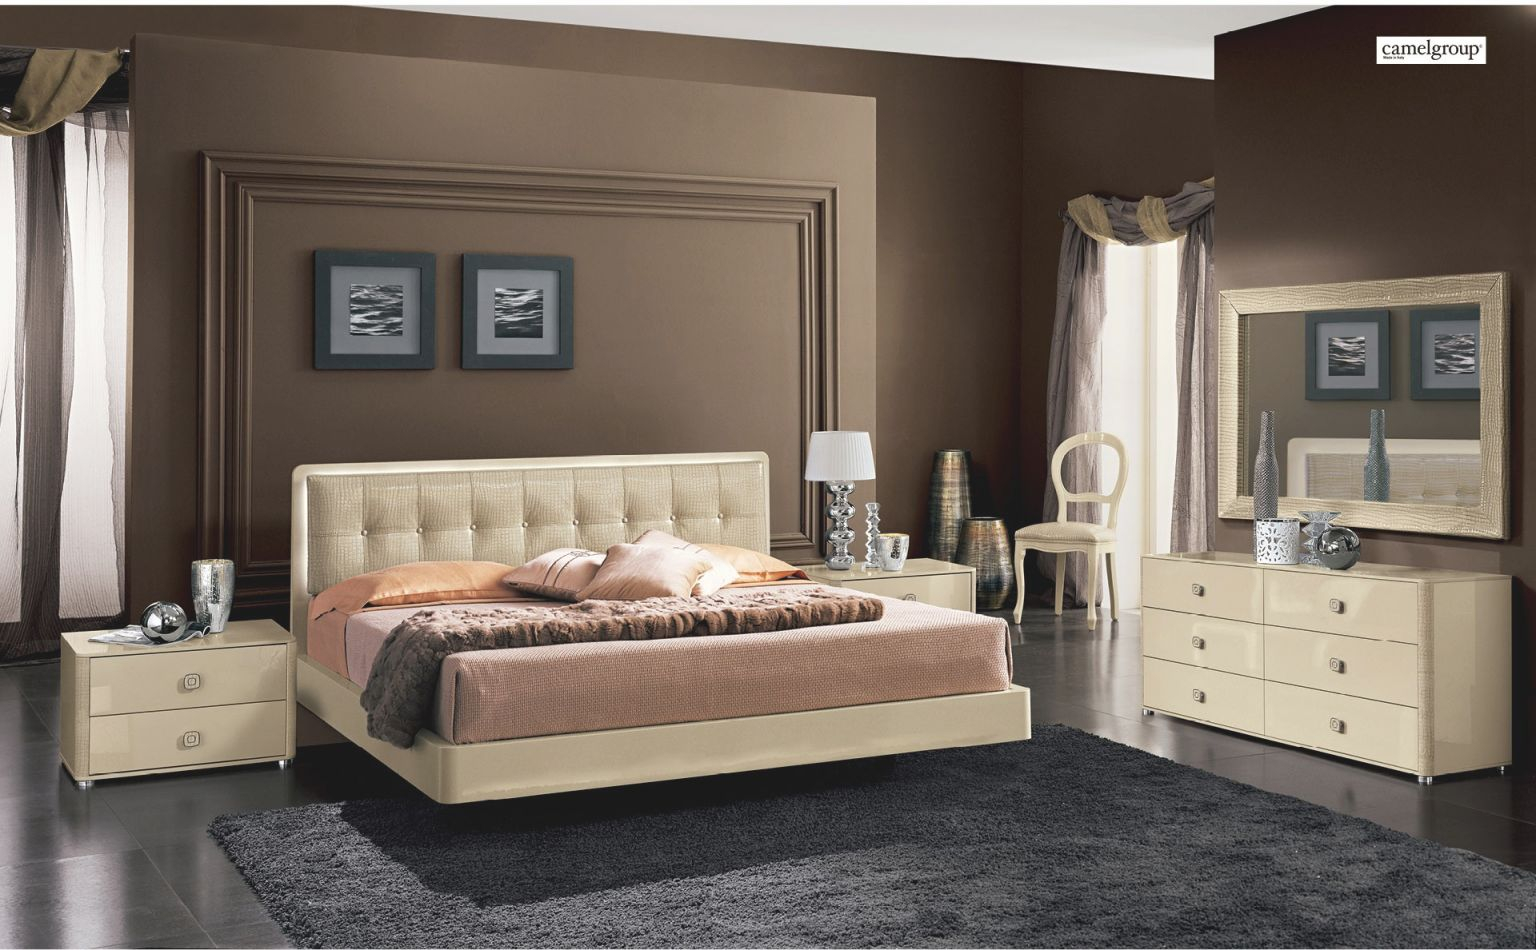 Bedroom Design Furniture Modern Bedrooms La Star Beige Intended For Contemporary Bedroom Furniture Sets Awesome Decors